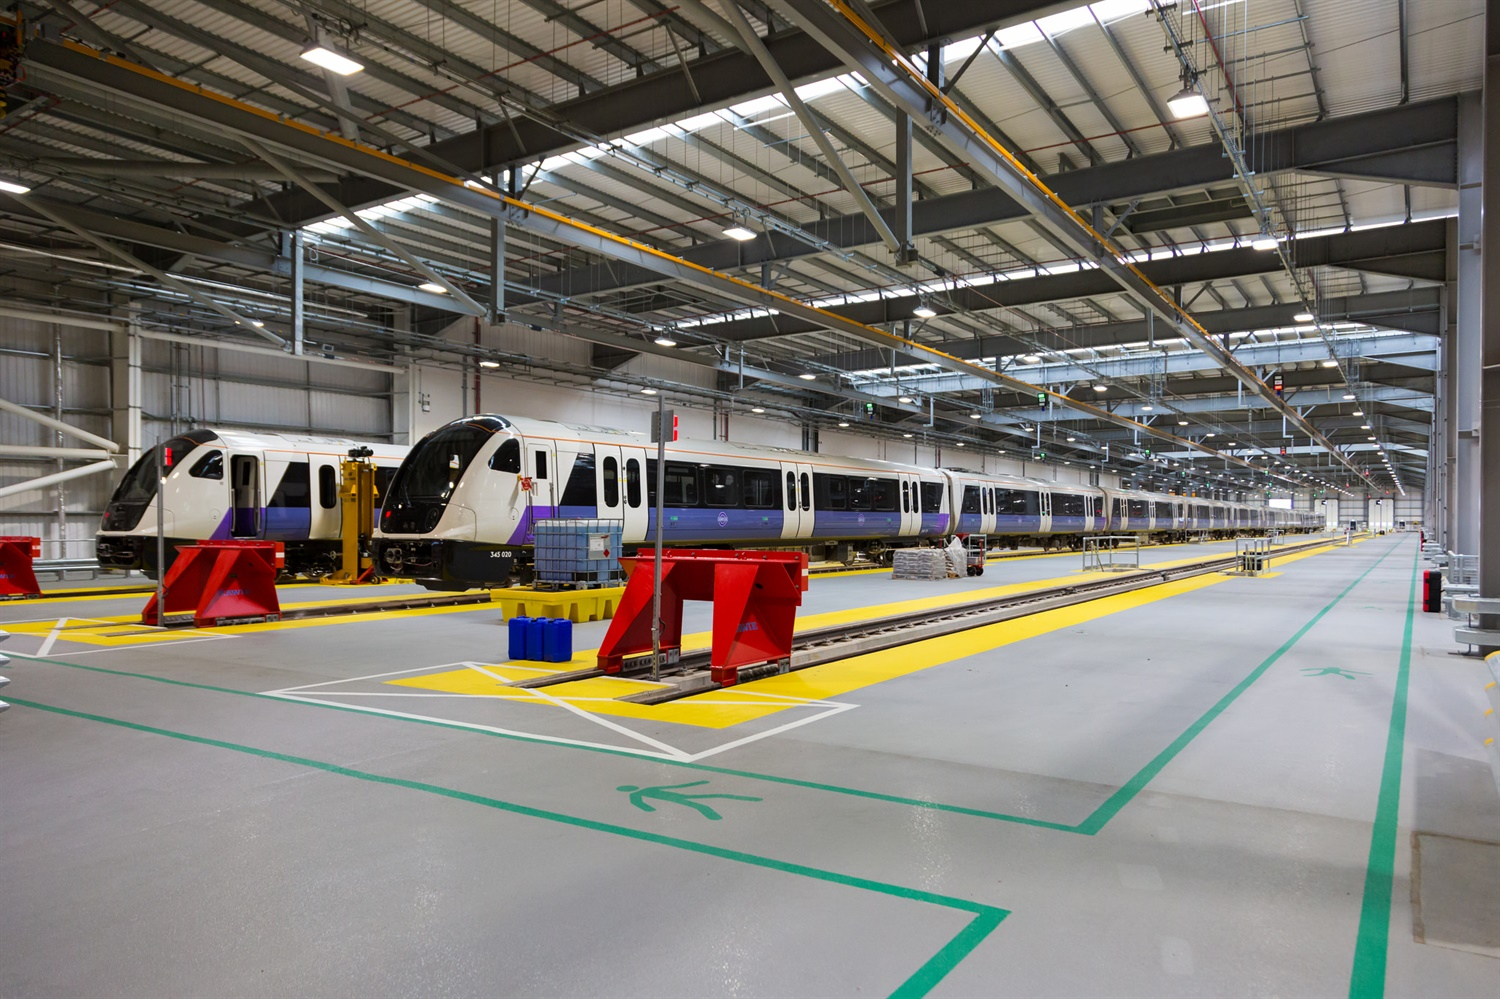 Old Oak Common depot begins operations ahead of Elizabeth Line launch